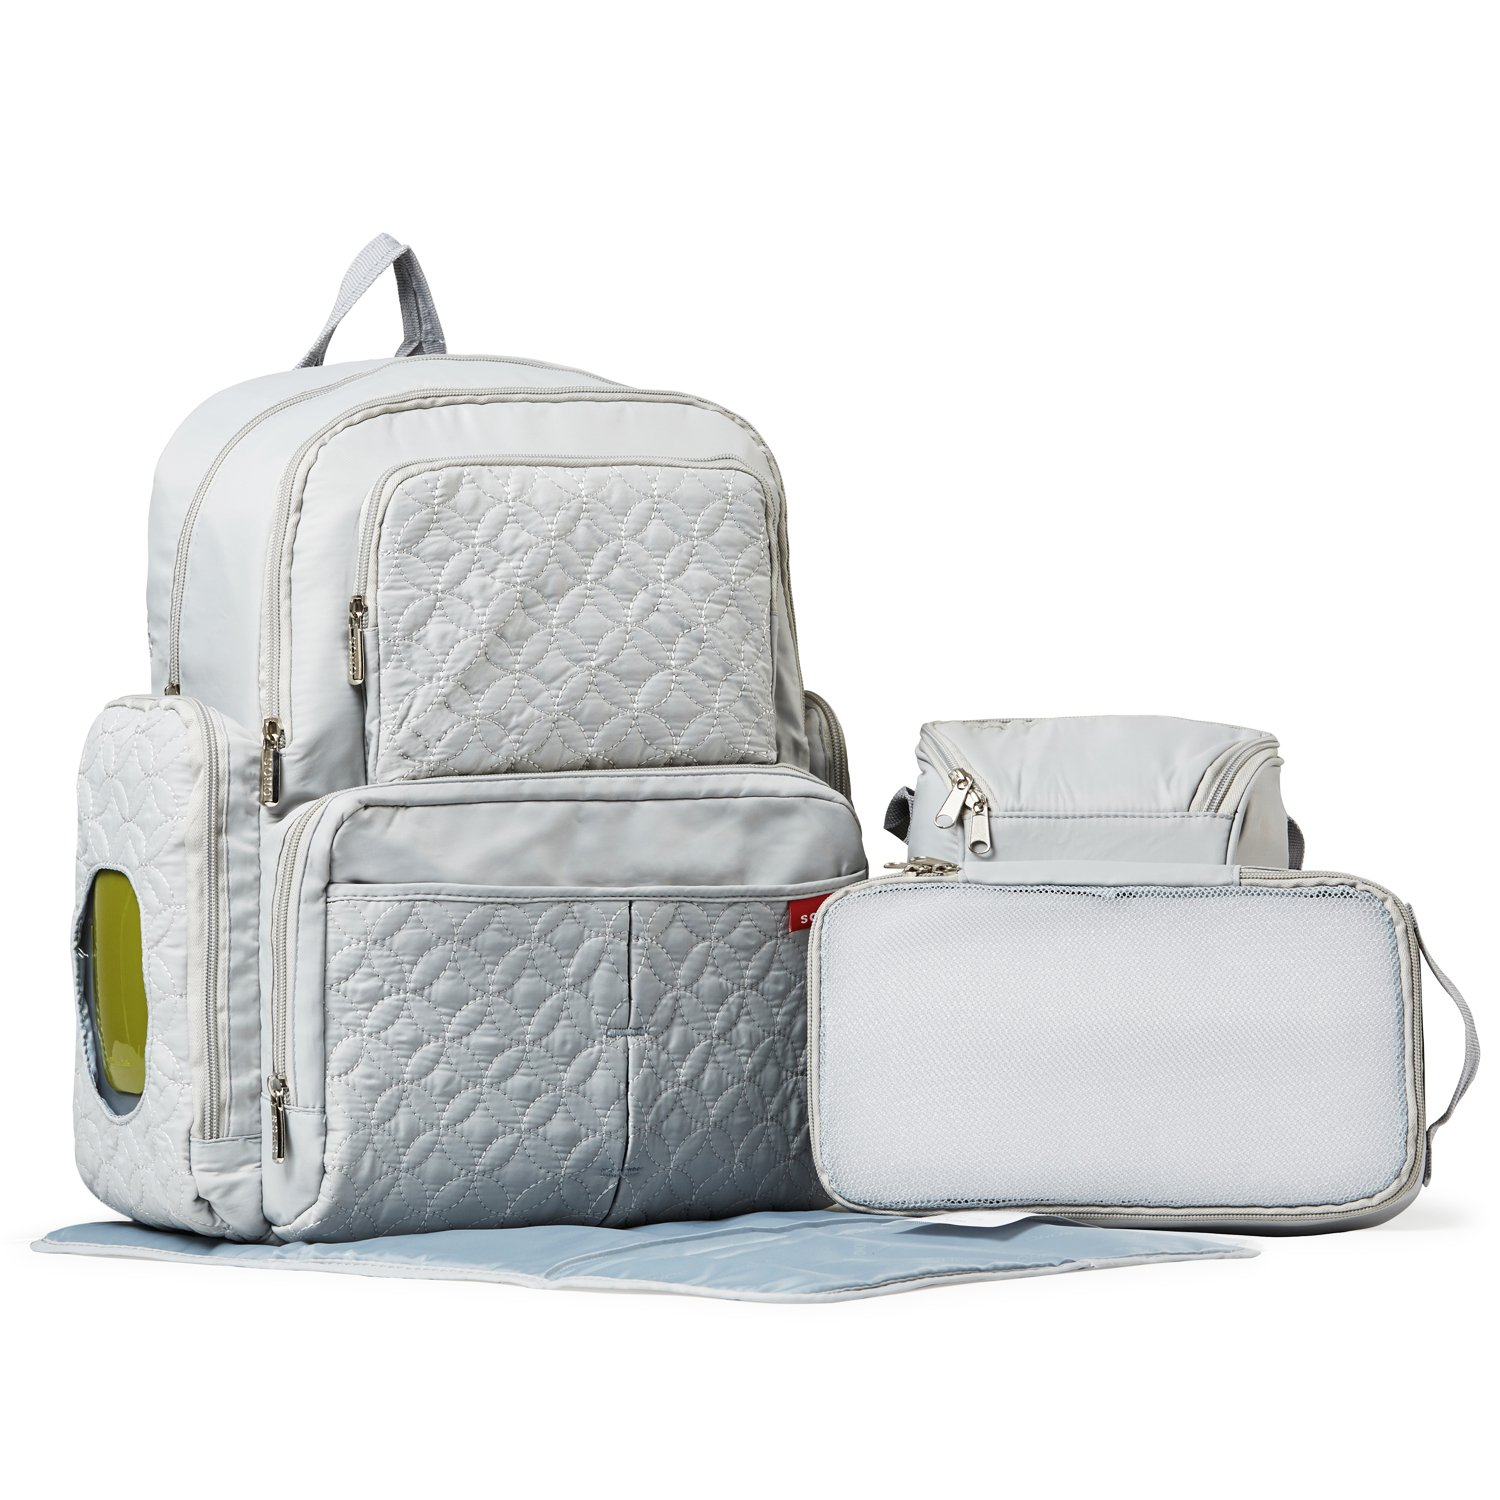 Amazon.com : Diaper Bag Backpack for Mom or Dad with Stroller Straps, Changing Pad, Insulated Pockets, Waterproof Baby Diaper Bag, Organizer Pouches, ...